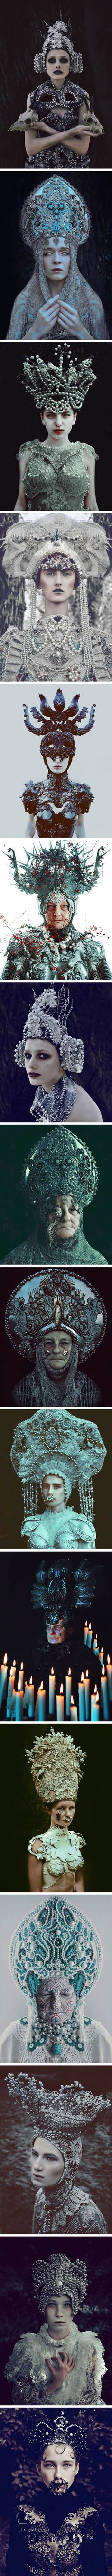 Pagan-Themed Photoshoot Of Slavic Culture